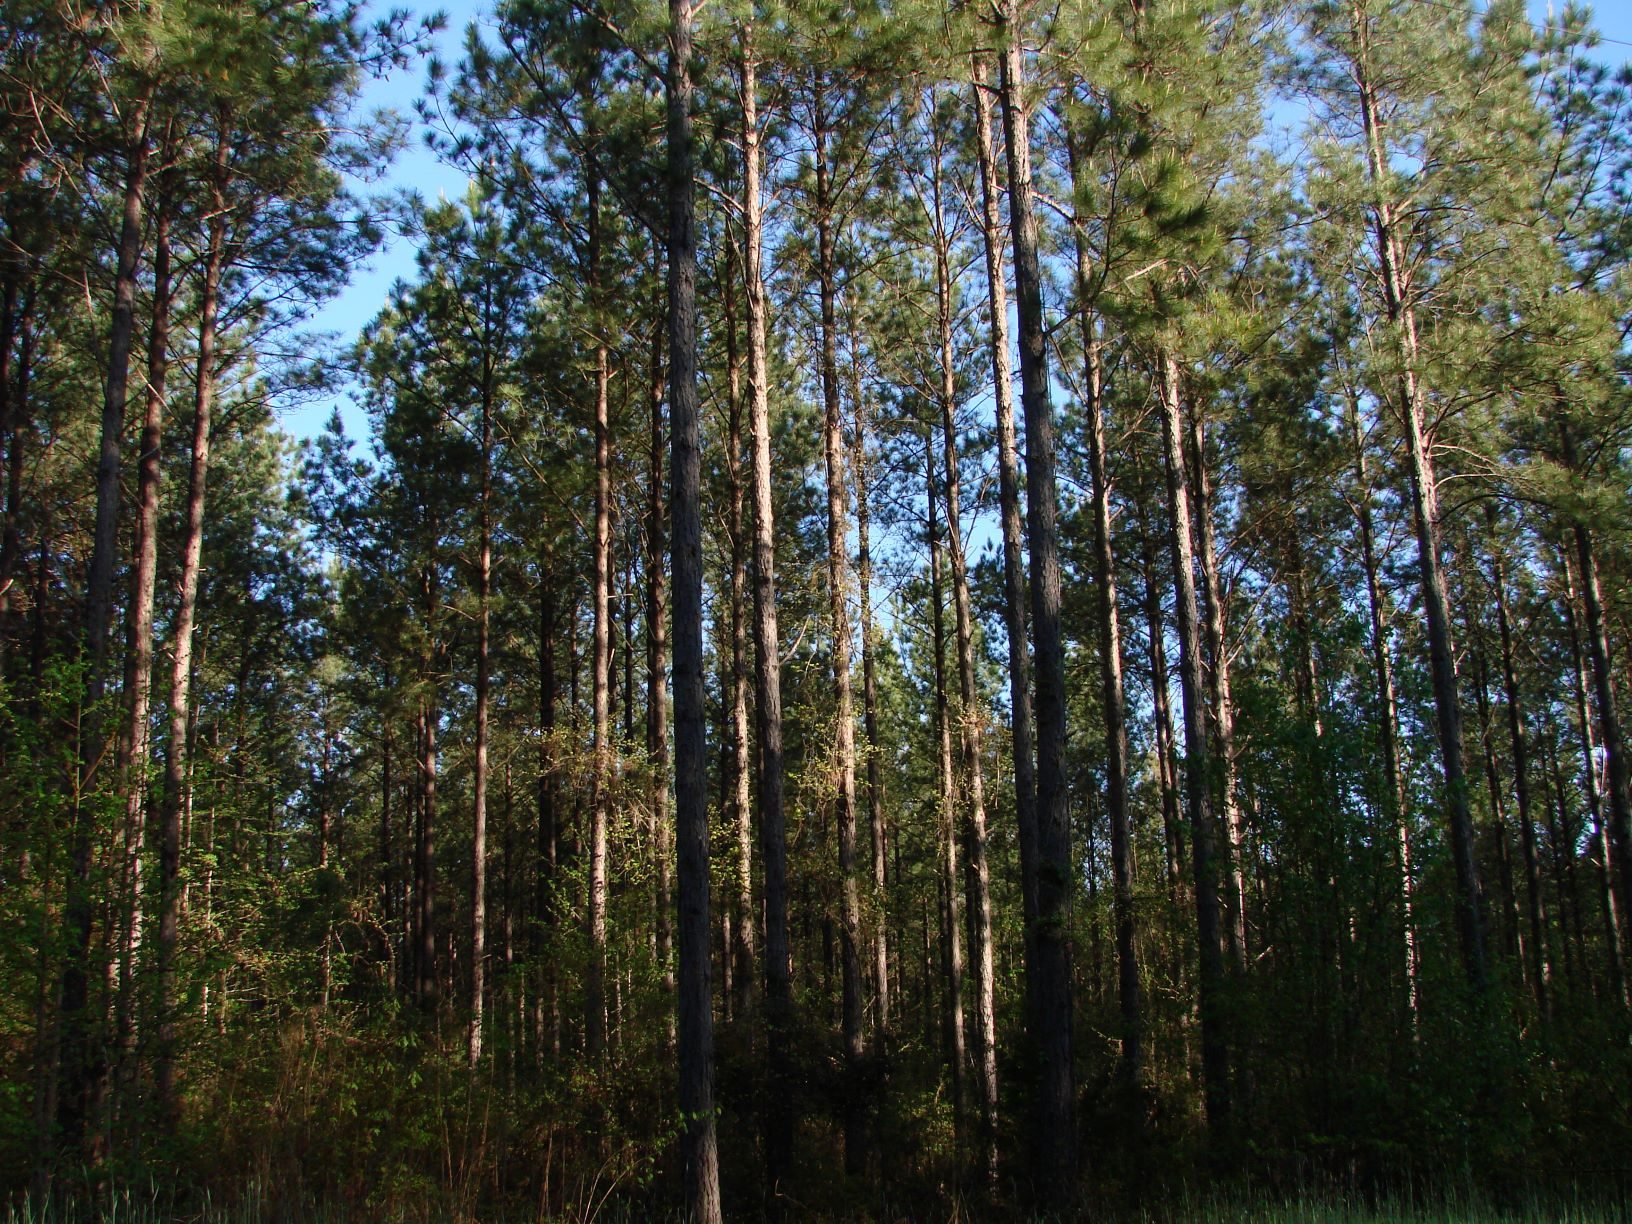 These pines have substantial value - call for timber appraisal